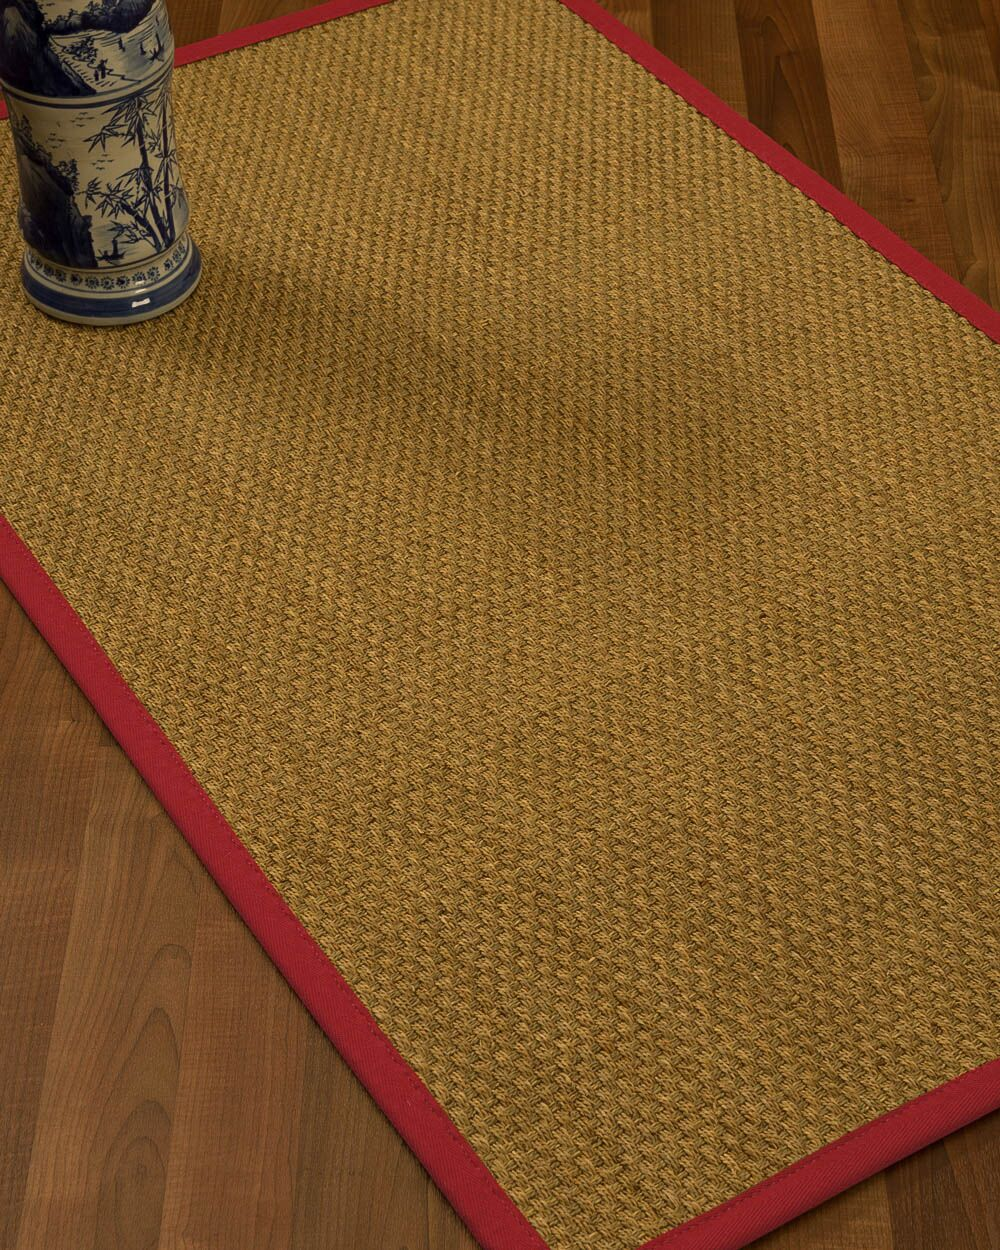 Rosabel Border Hand-Woven Beige/Red Area Rug Rug Size: Rectangle 9' x 12', Rug Pad Included: Yes